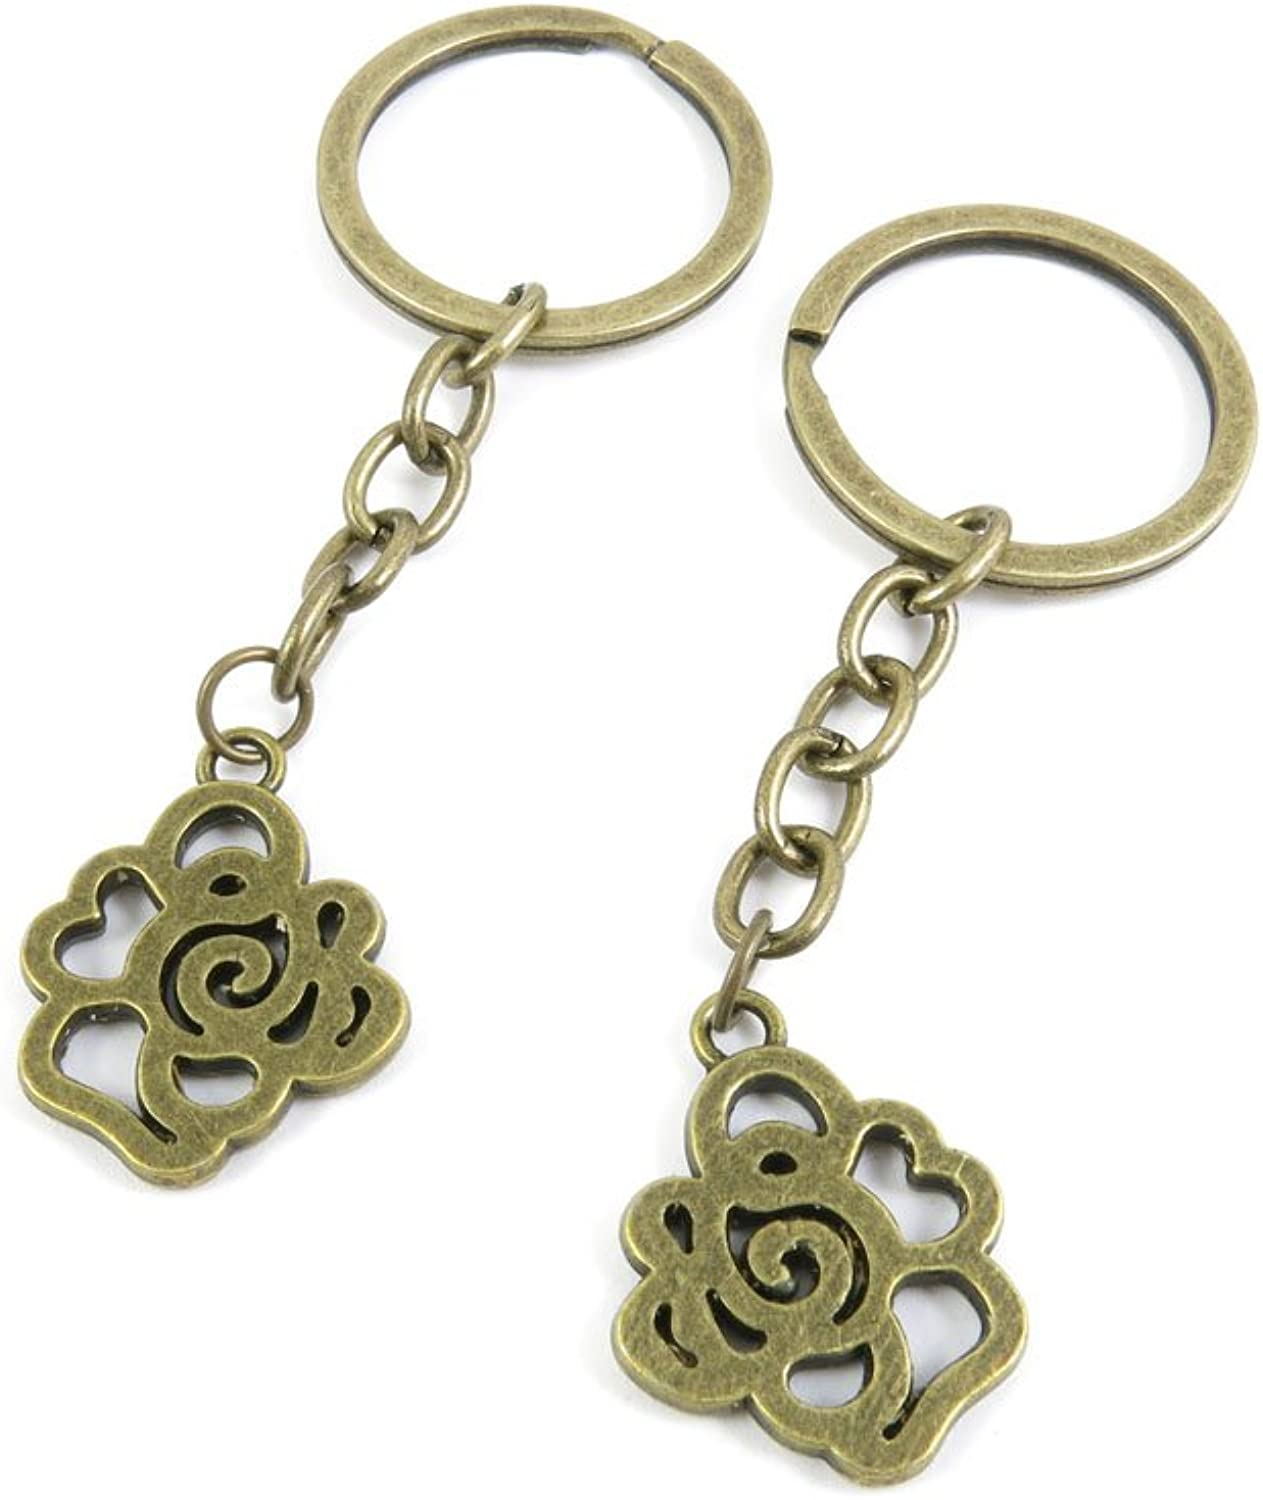 100 PCS Keyrings Keychains Key Ring Chains Tags Jewelry Findings Clasps Buckles Supplies A8WU3 pink